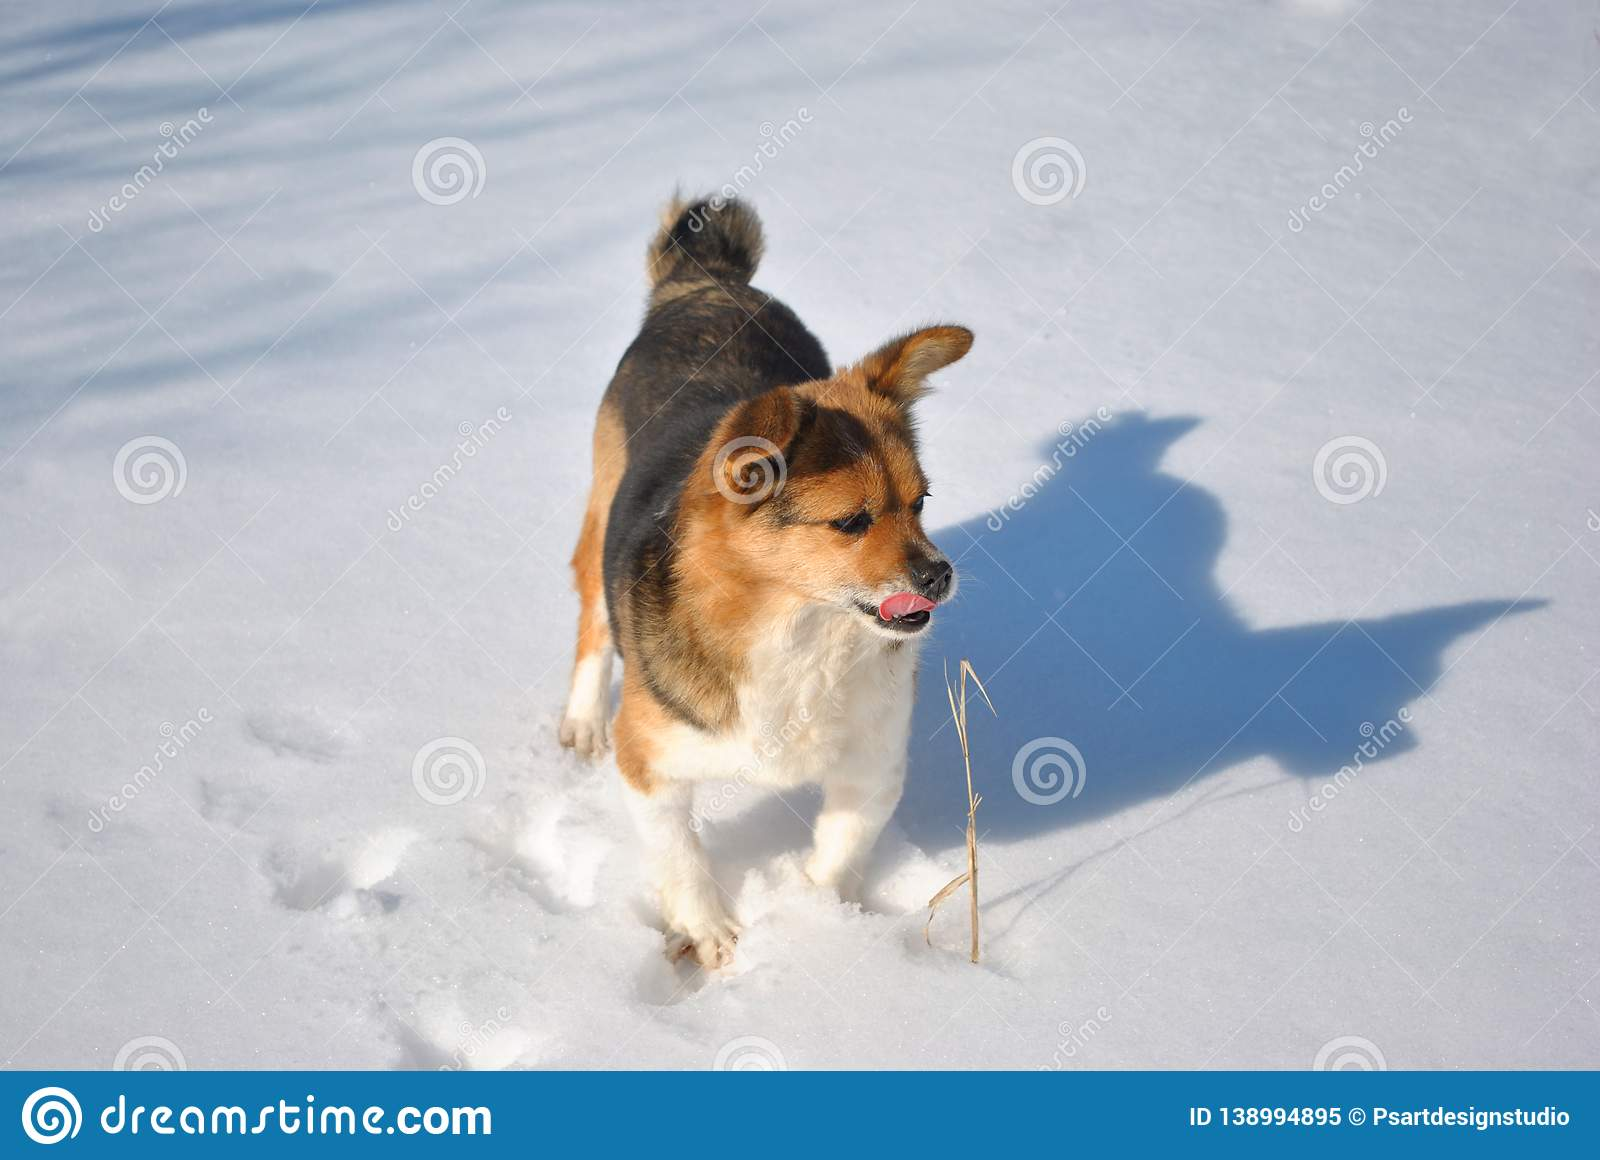 Small cute fluffy dog with white, brown and black patches standing on snow and looking on yellow grass twig, licks her tongue